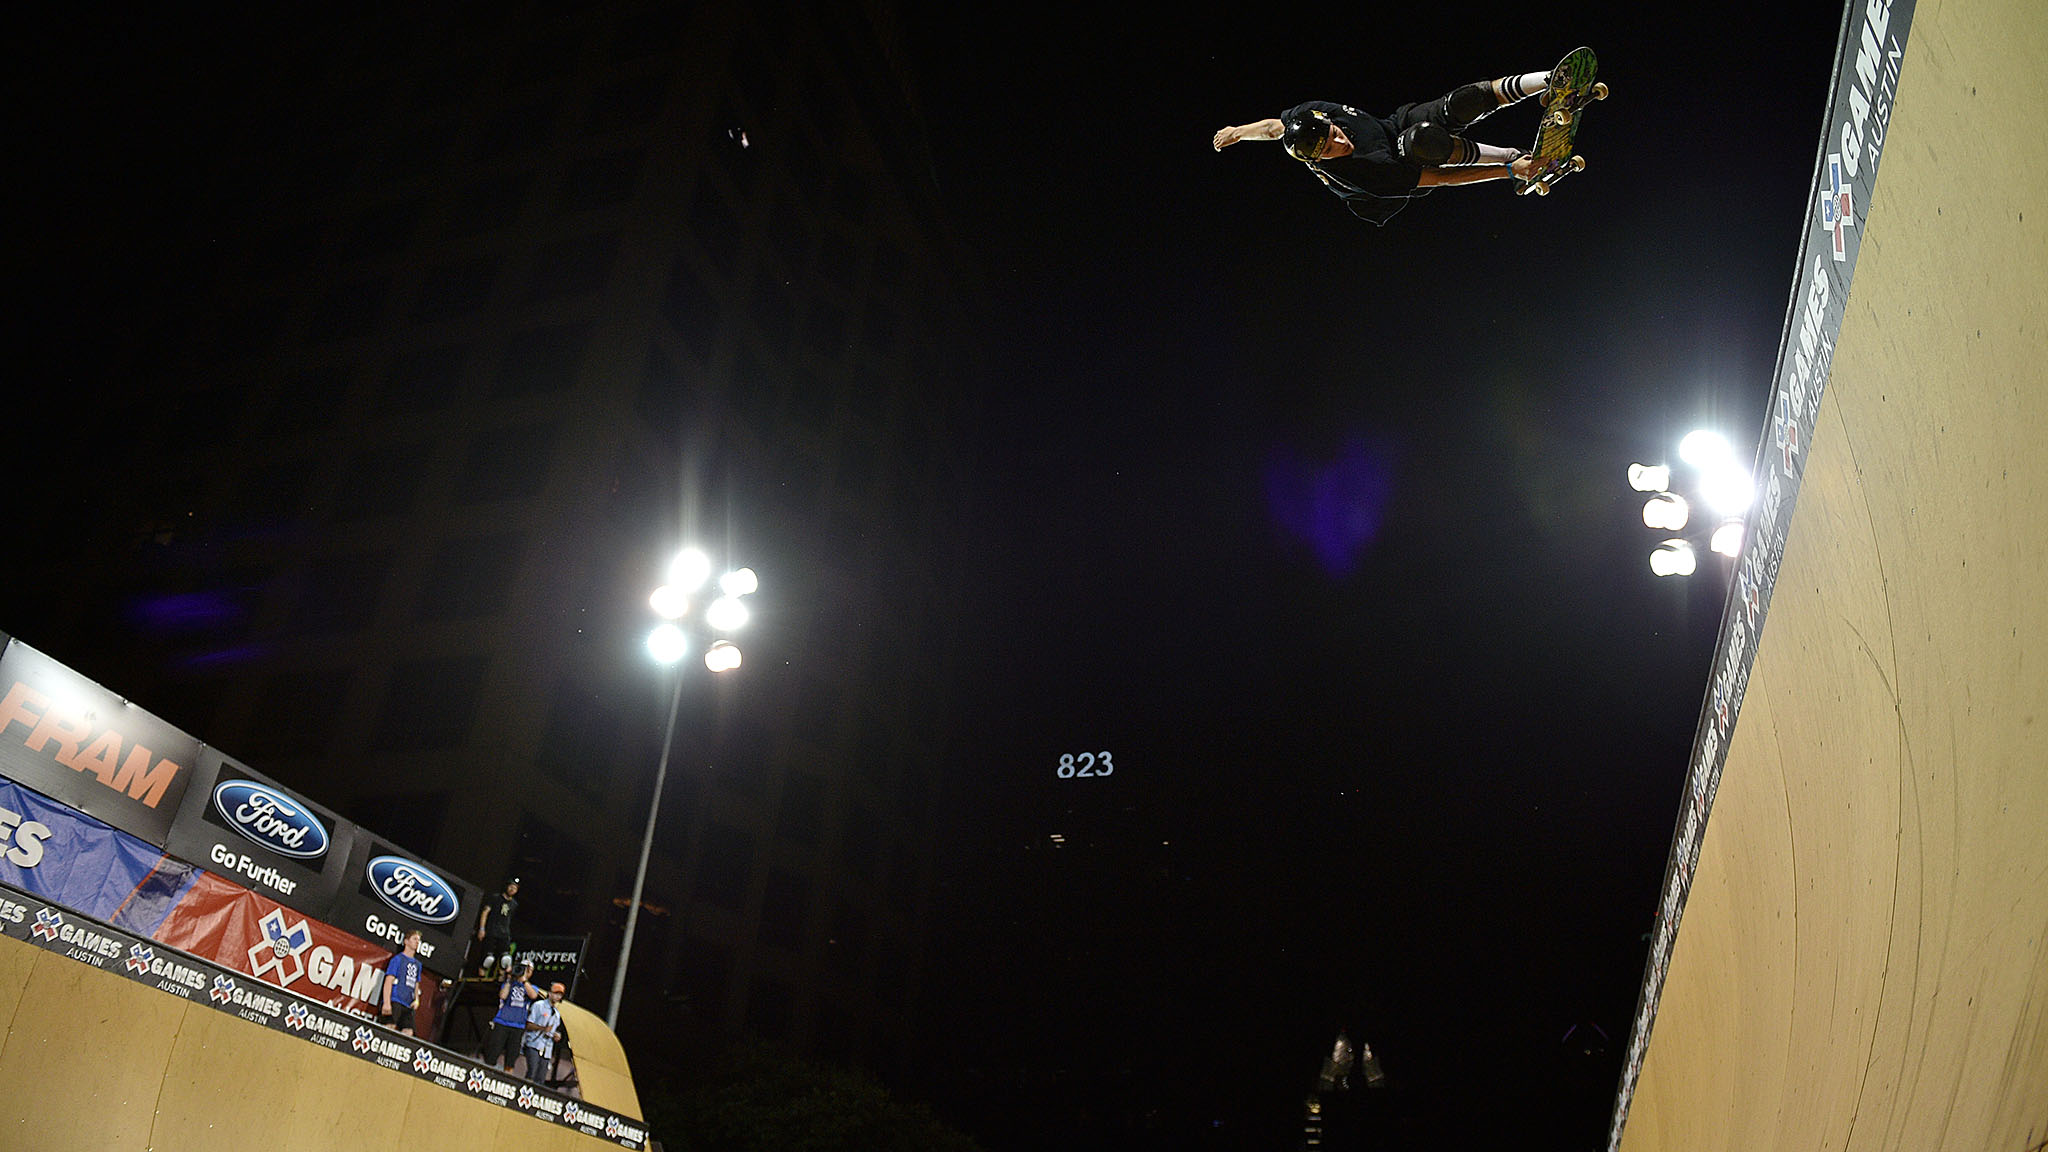 Twenty-year-old Jimmy Wilkins became just the seventh different skater to win gold on the vert ramp in the 20-year history of X Games. It's both shock and anxiety, said Wilkins, who previously estimated his chances of winning at none.